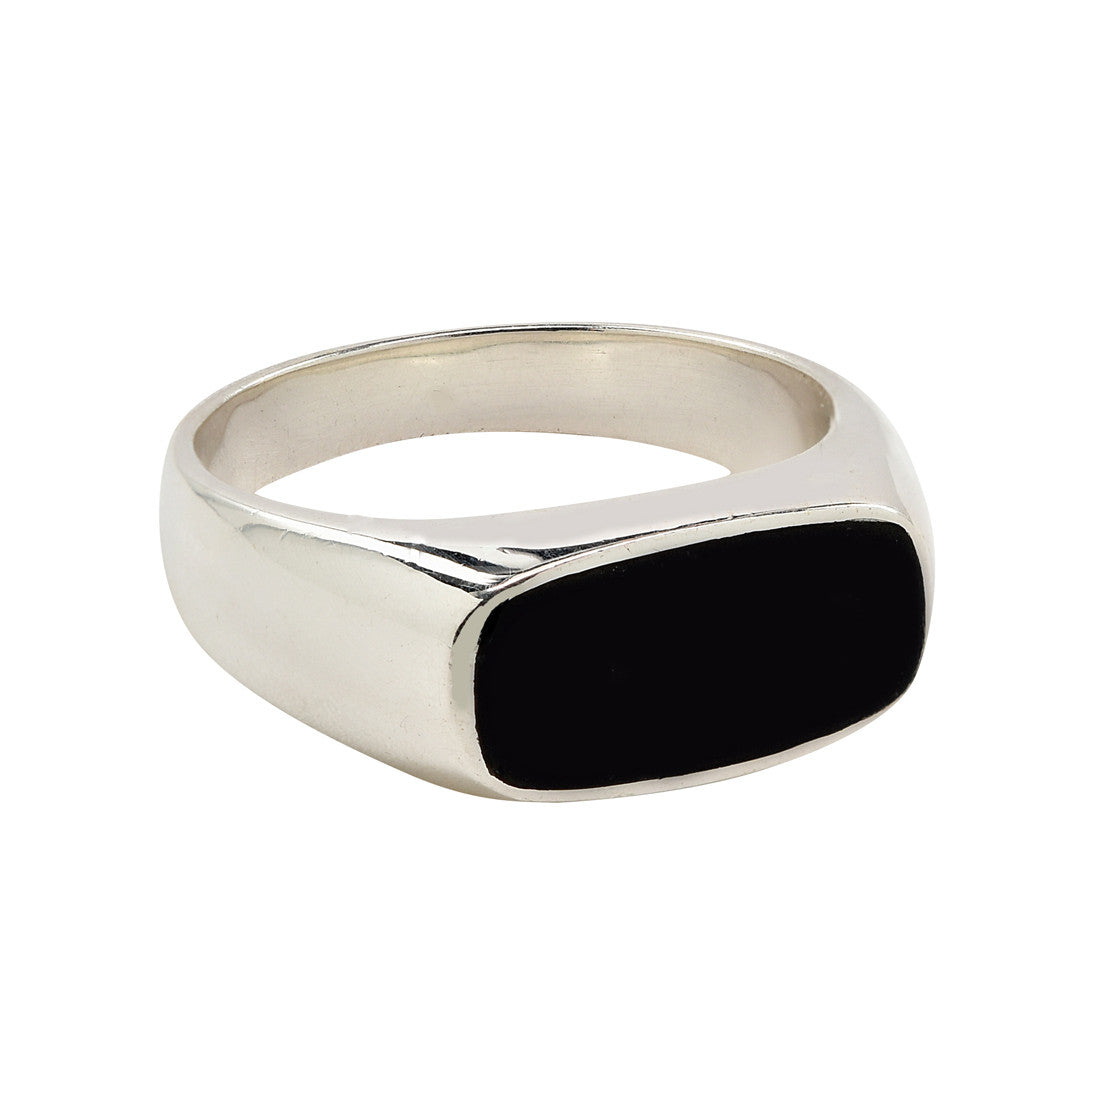 large rings ring silver ana by jade nephrite handcrafted black size sterling co products